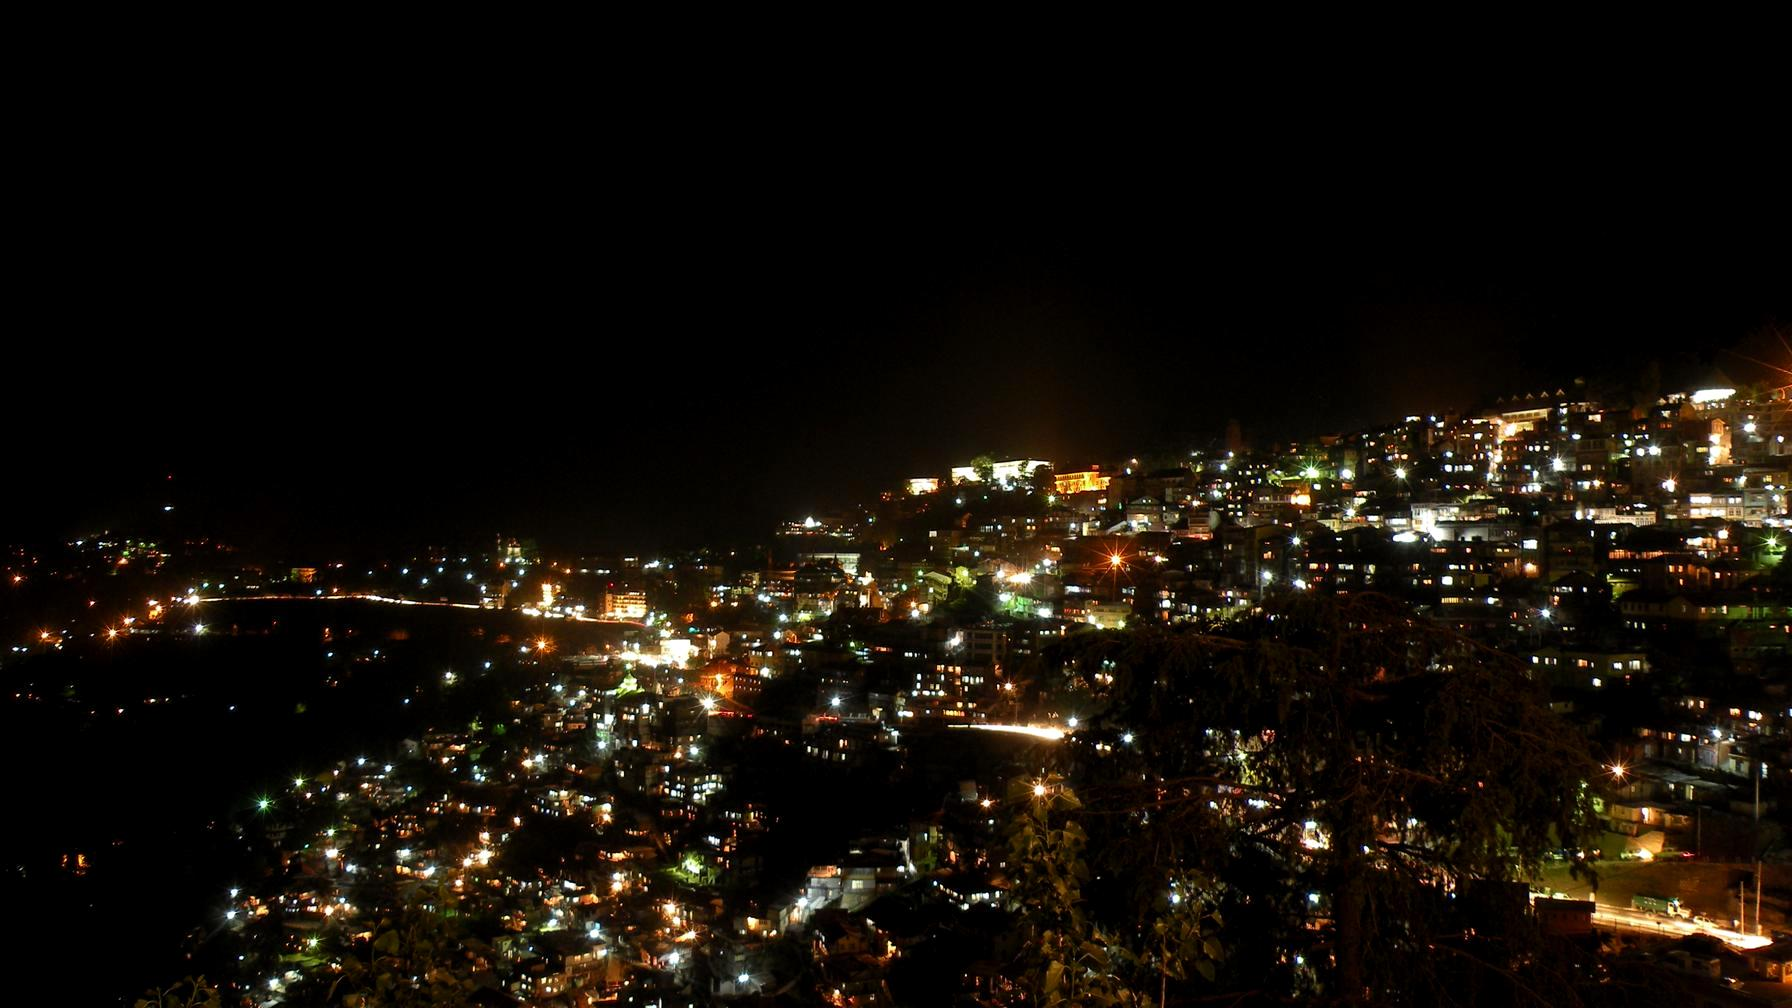 Night View of the City of Shimla